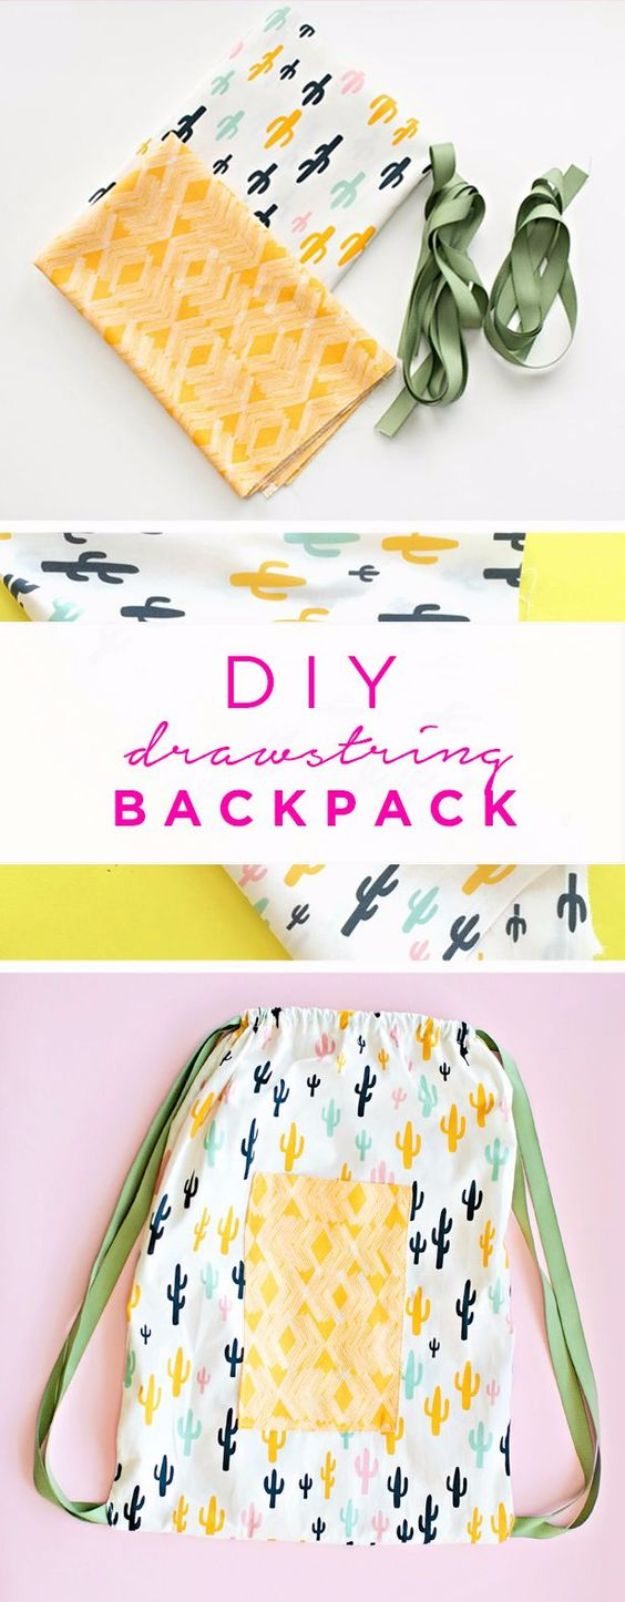 DIY School Supplies - DIY Drawstring Backpack - Easy Crafts and Do It Yourself Ideas for Back To School - Pencils, Notebooks, Backpacks and Fun Gear for Going Back To Class - Creative DIY Projects for Cheap School Supplies - Cute Crafts for Teens and Kids http://diyprojectsforteens.com/diy-back-to-school-supplies